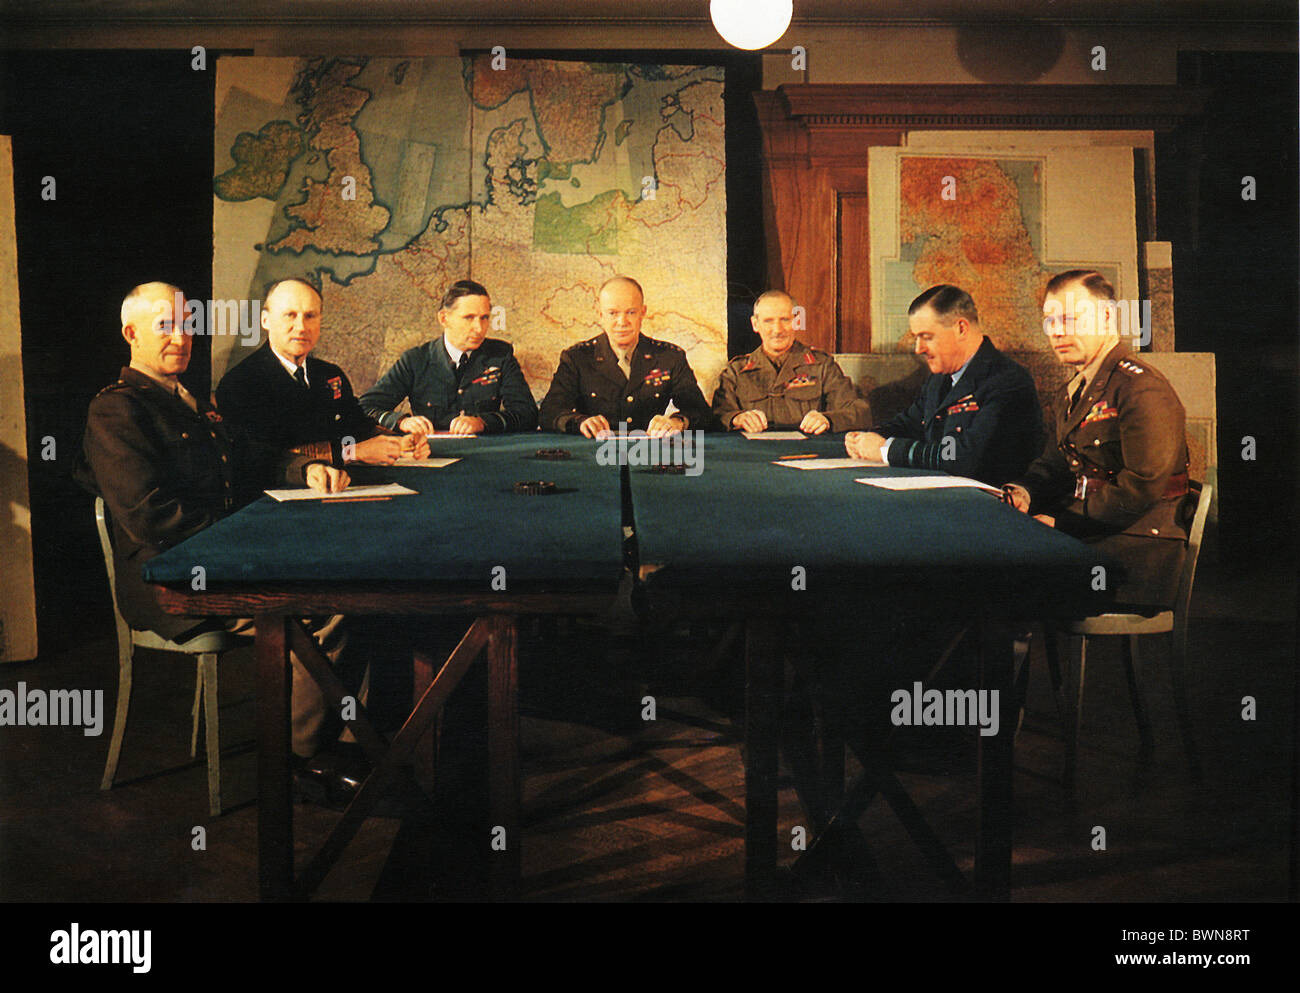 1944 World War II Commanders Allied forces Bradley Ramsey Tedder Eisenhower Montgomery Leight-Mallory Bedell - Stock Image